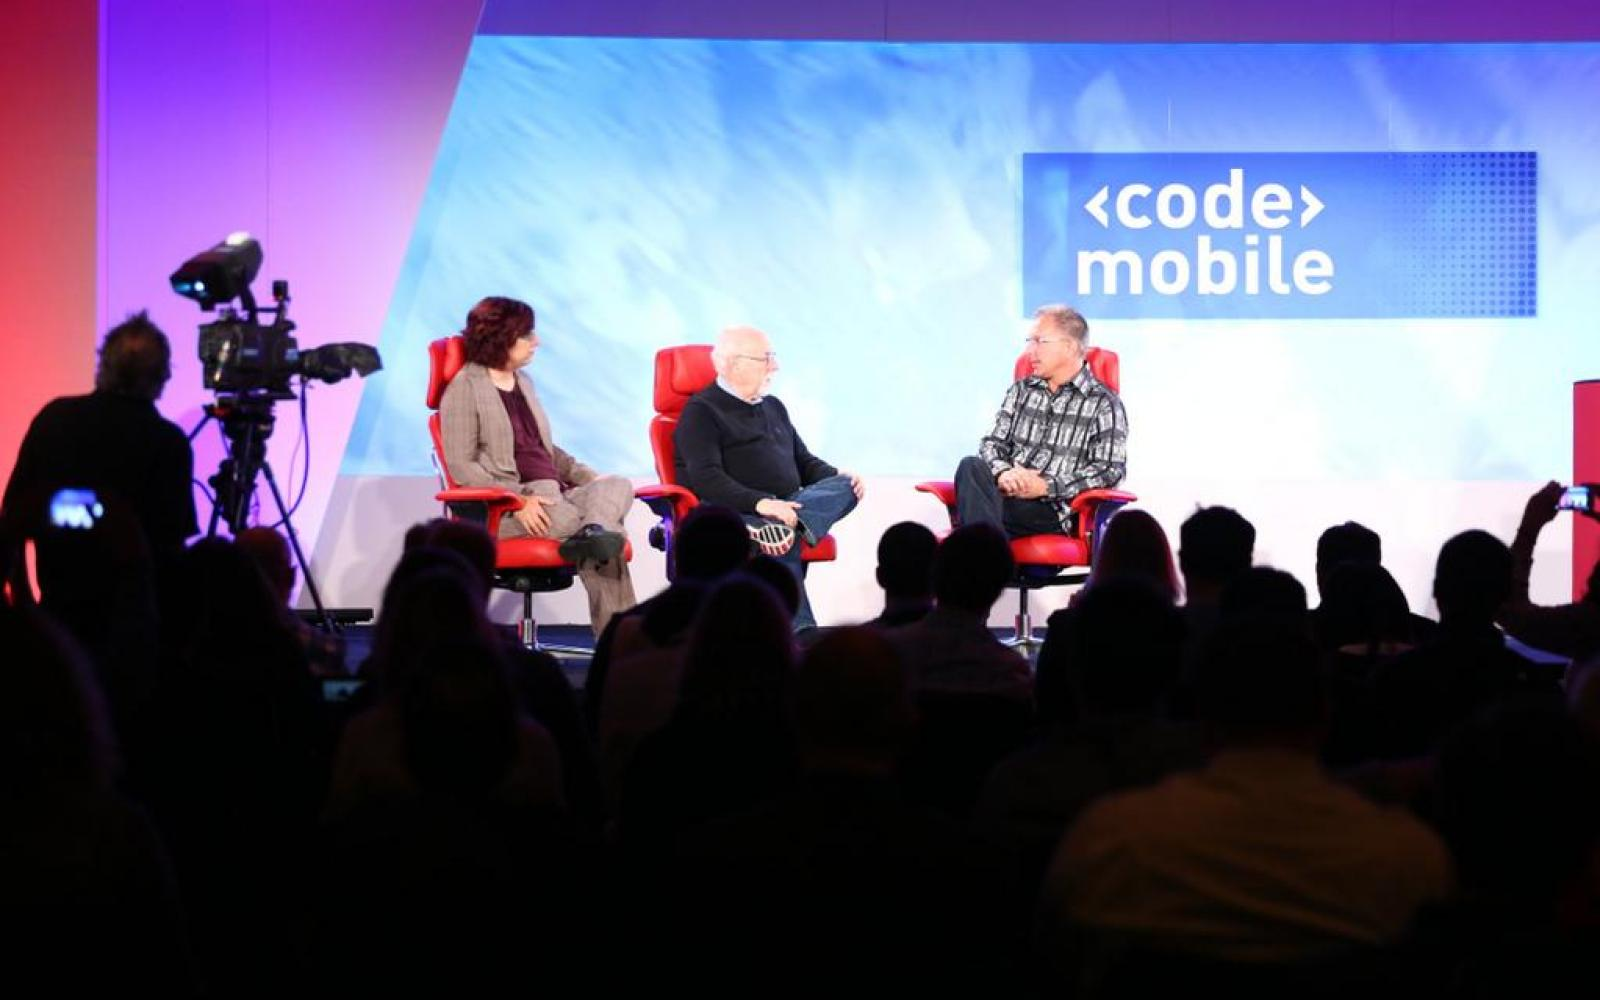 Full video from Apple VP Greg Joswiak's Code/Mobile conference interview now available